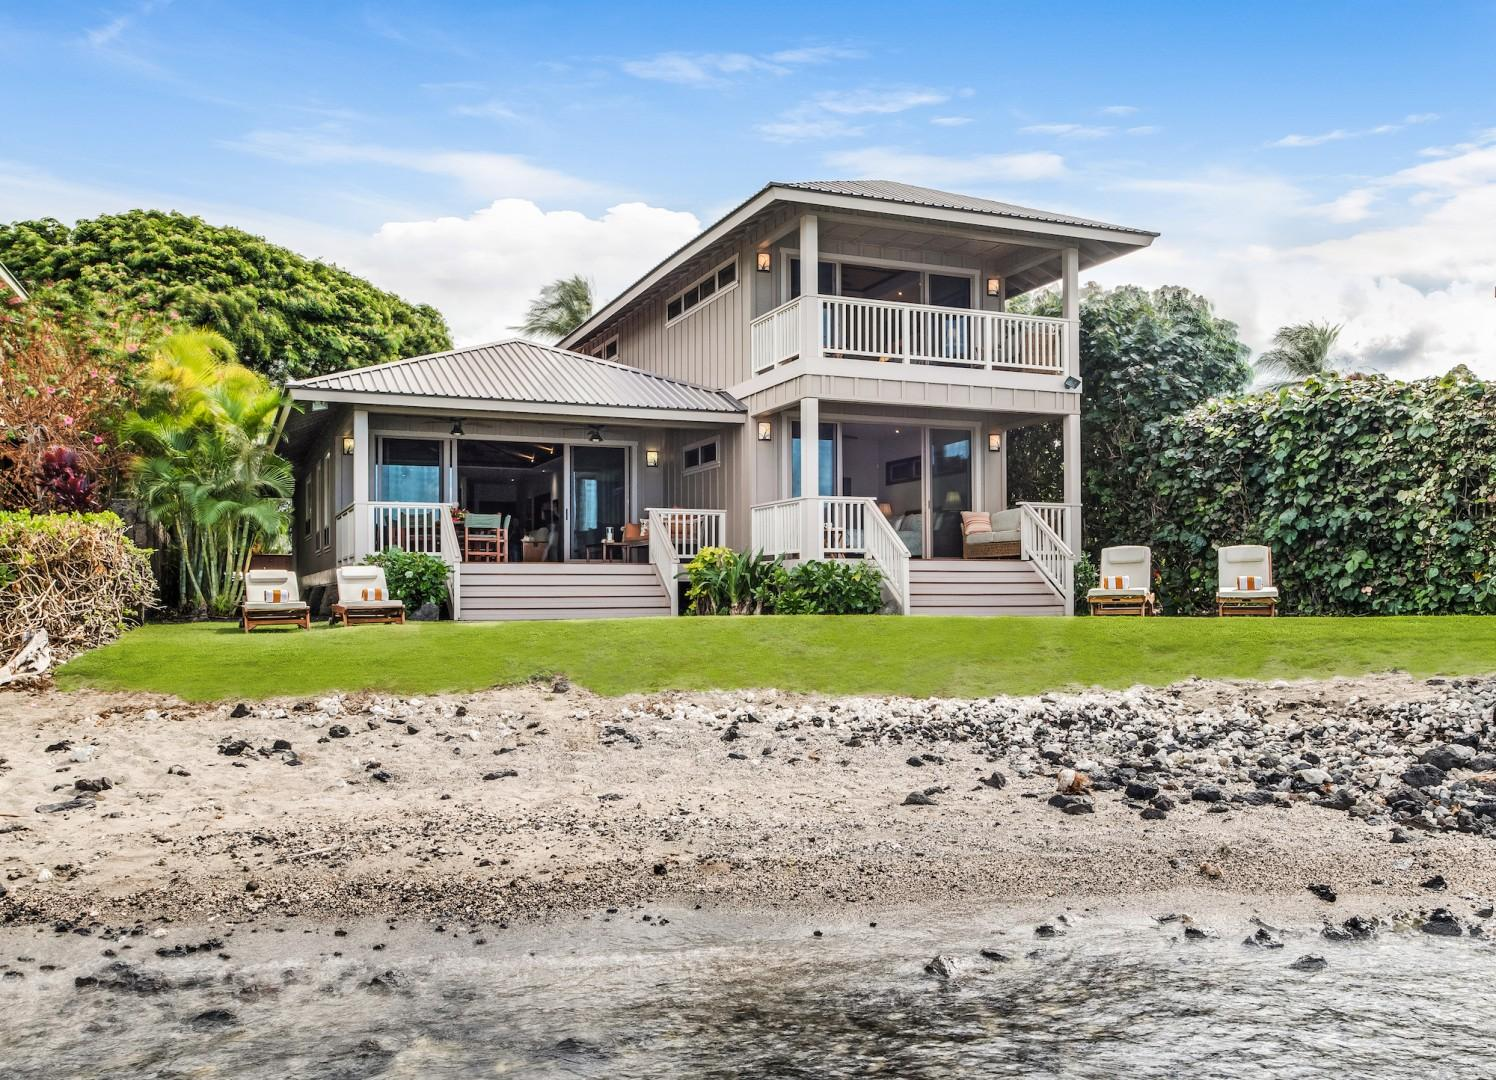 Beachside Bungalow w/ an Easy Flow to the Beautiful Outdoors. Master Bedroom Commands Entire Top Floor